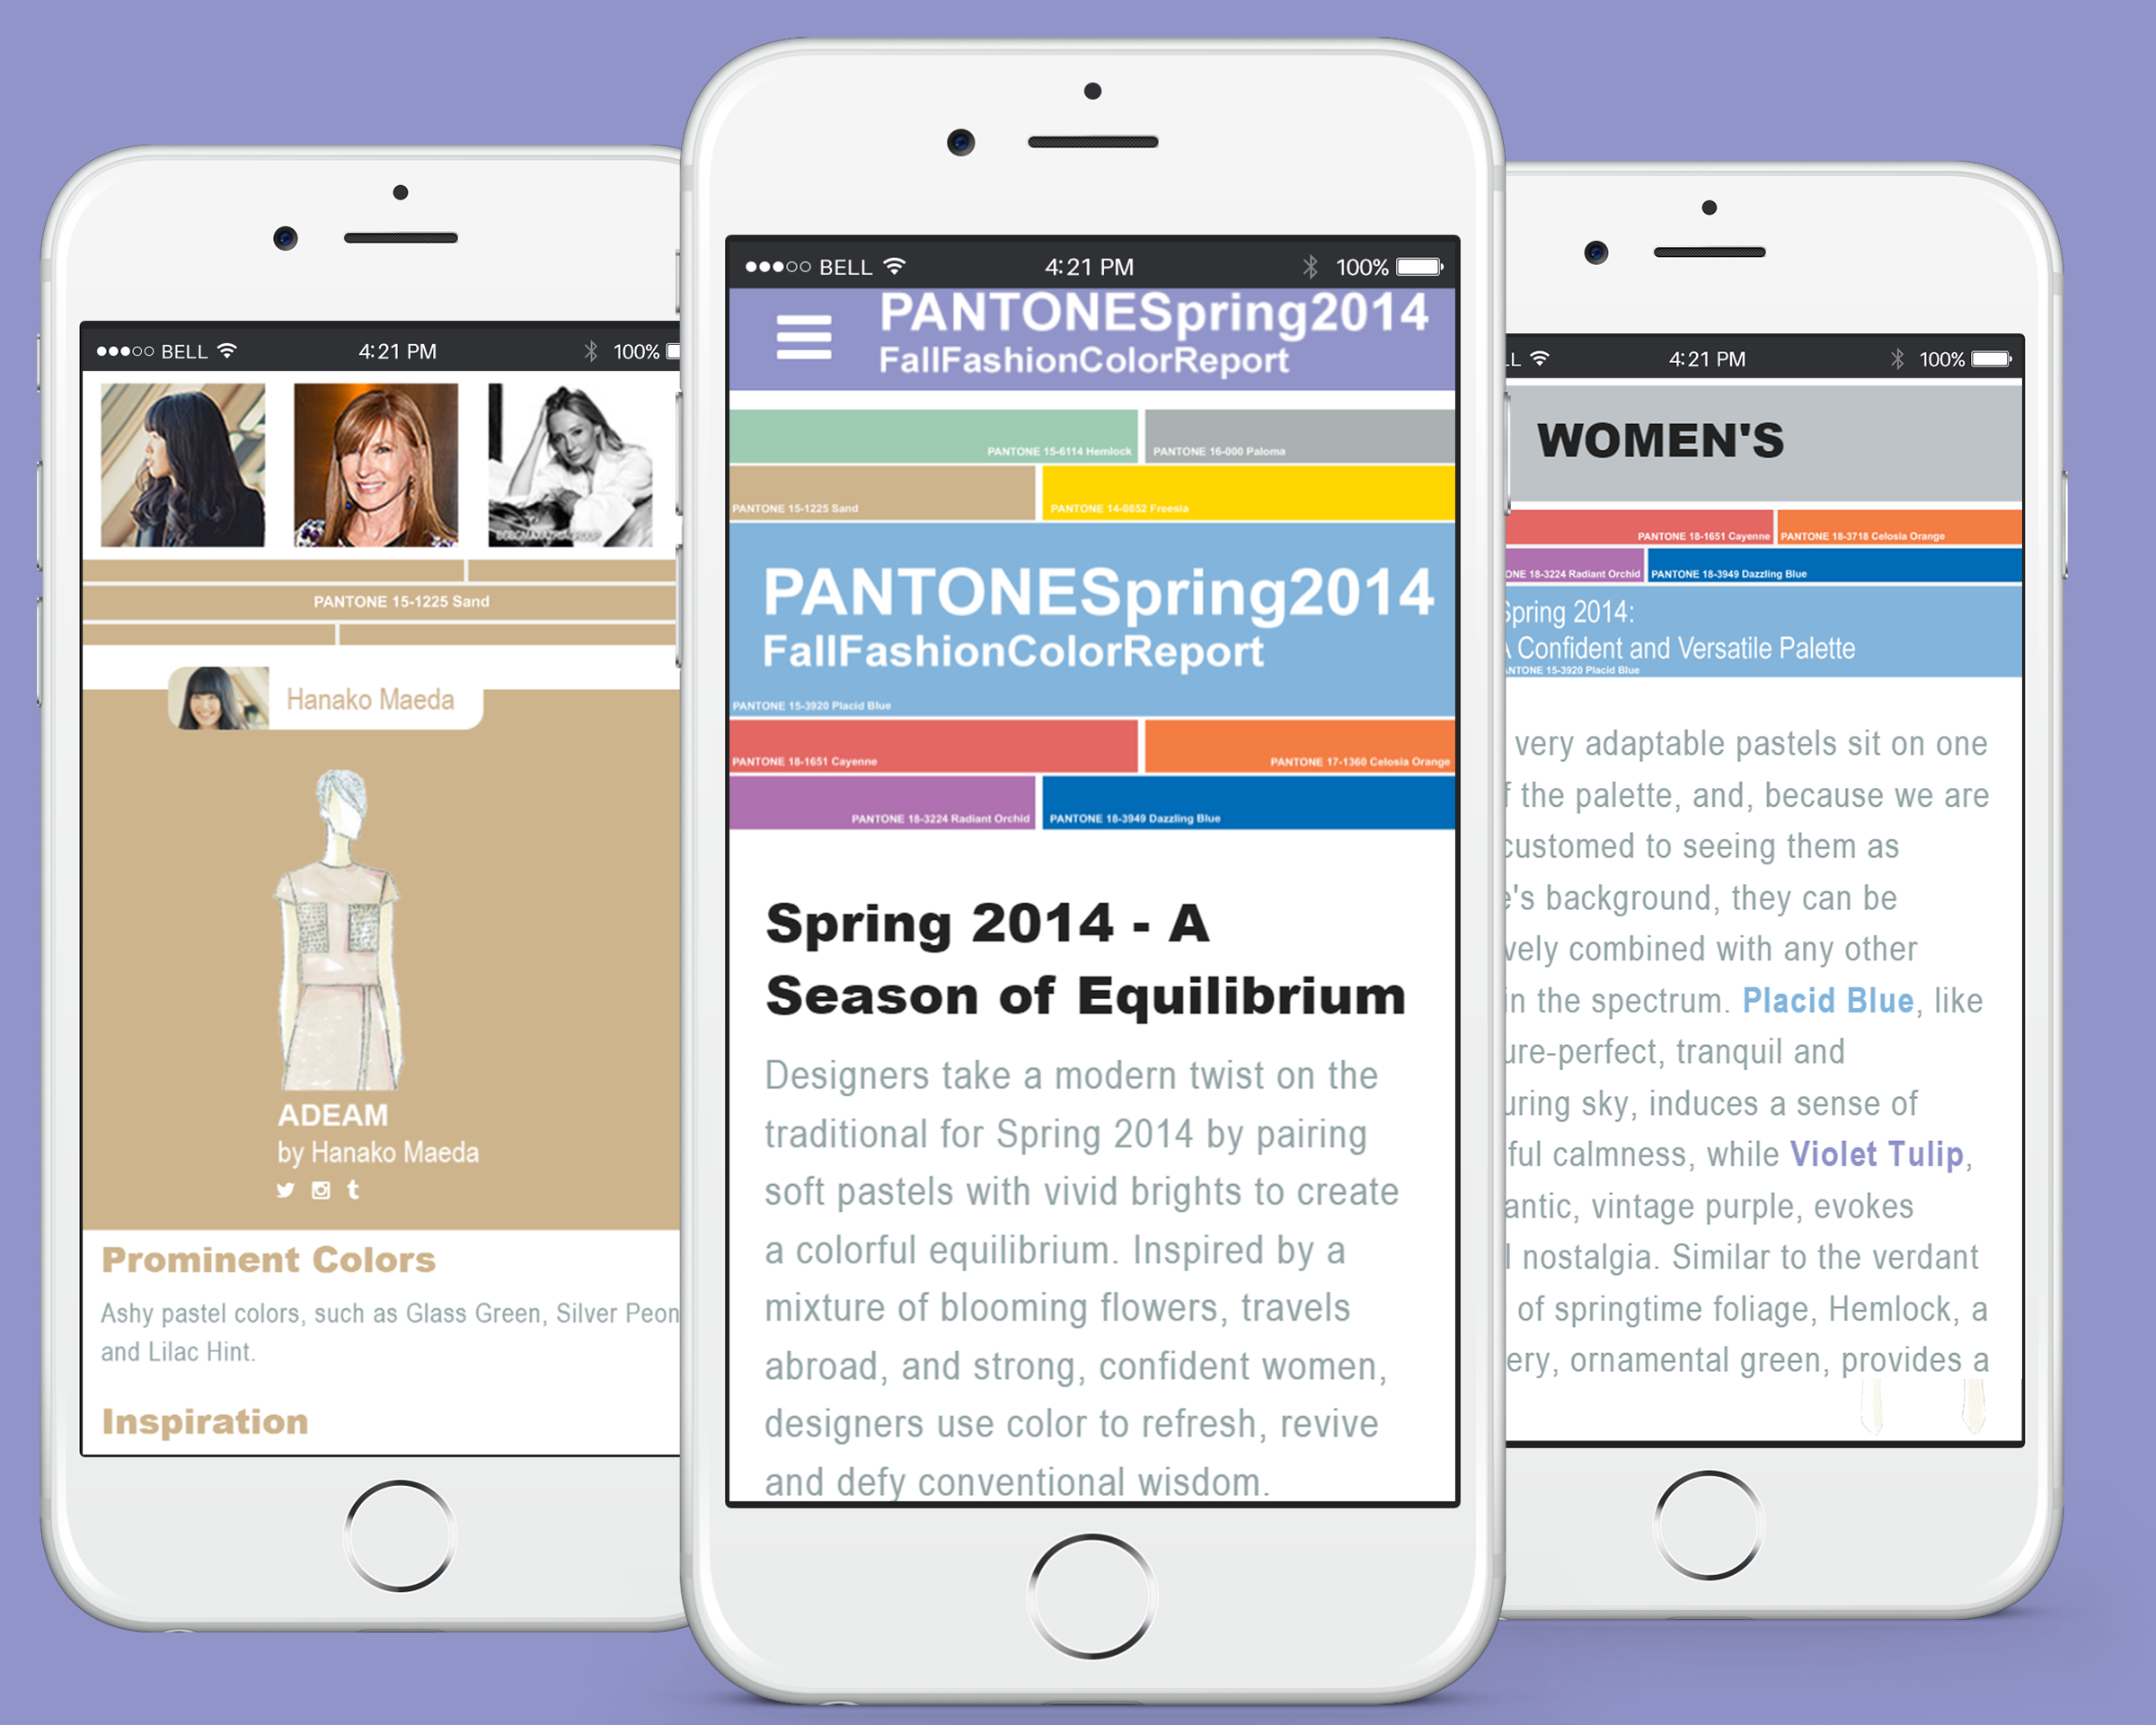 Pantone 2014 Spring Fashion Report Mobile Concept